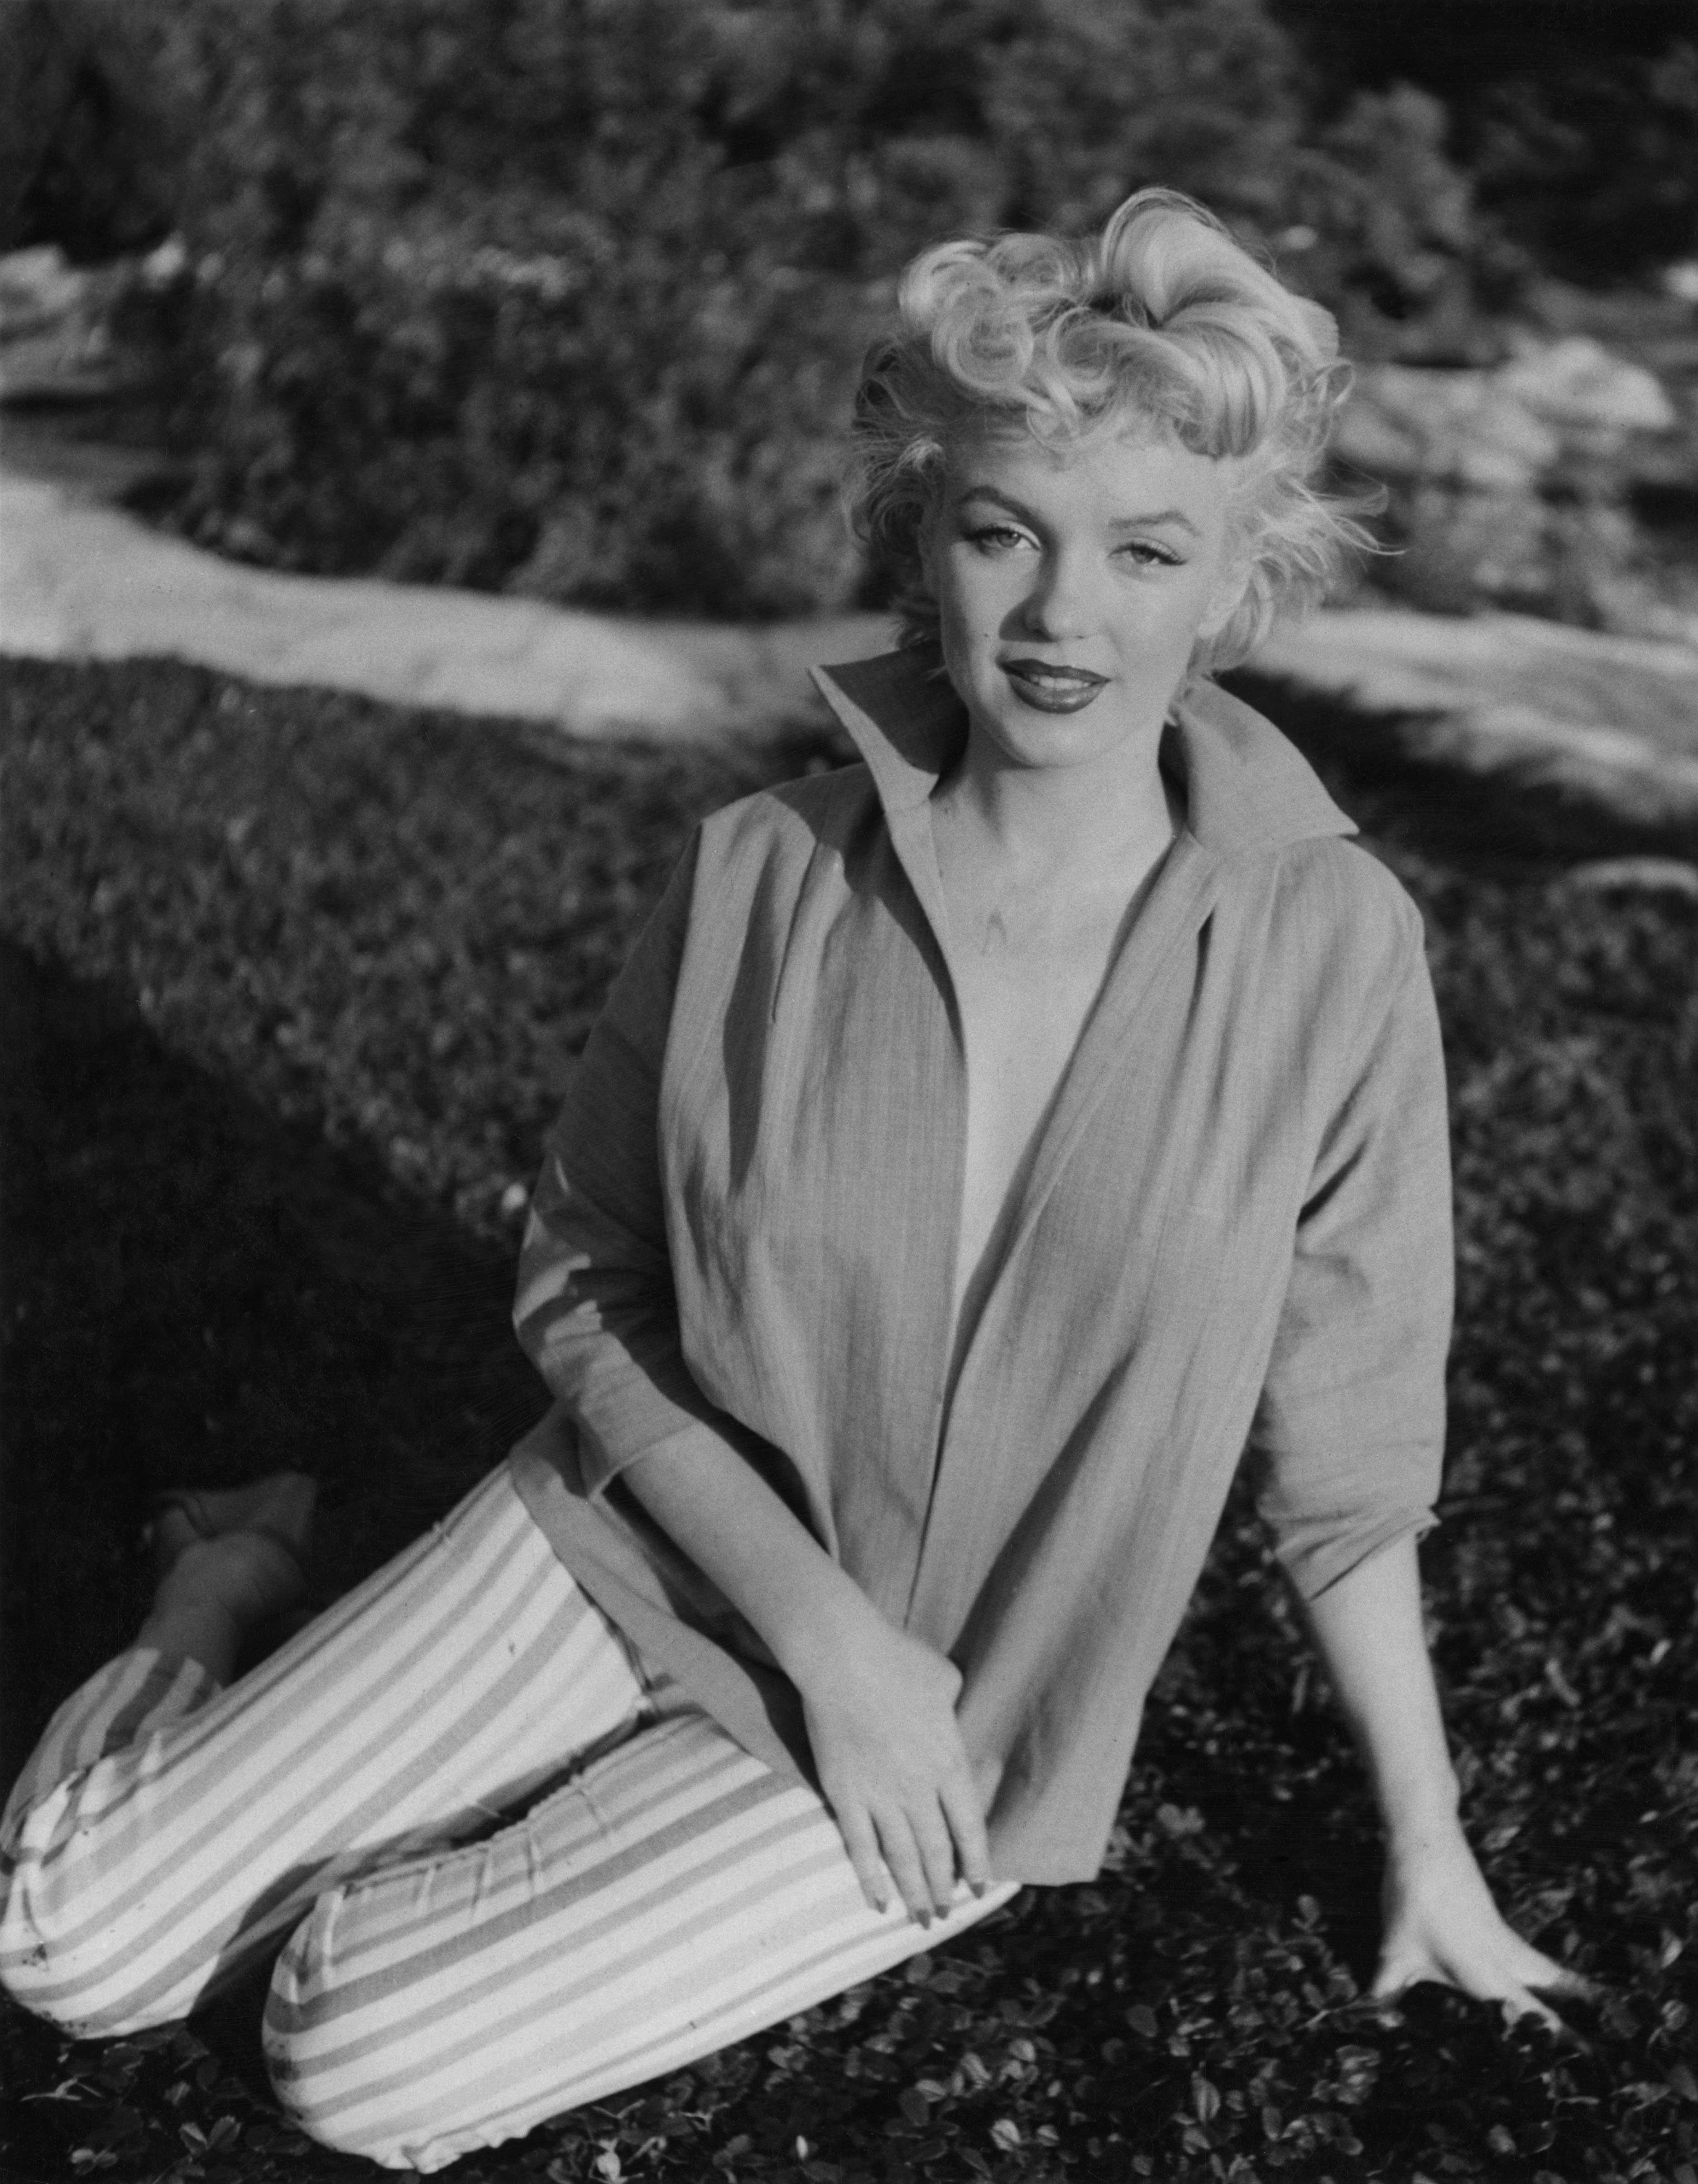 Marilyn Monroe's beloved home in Brentwood is now on the sales market - click through to see inside the charming abode.